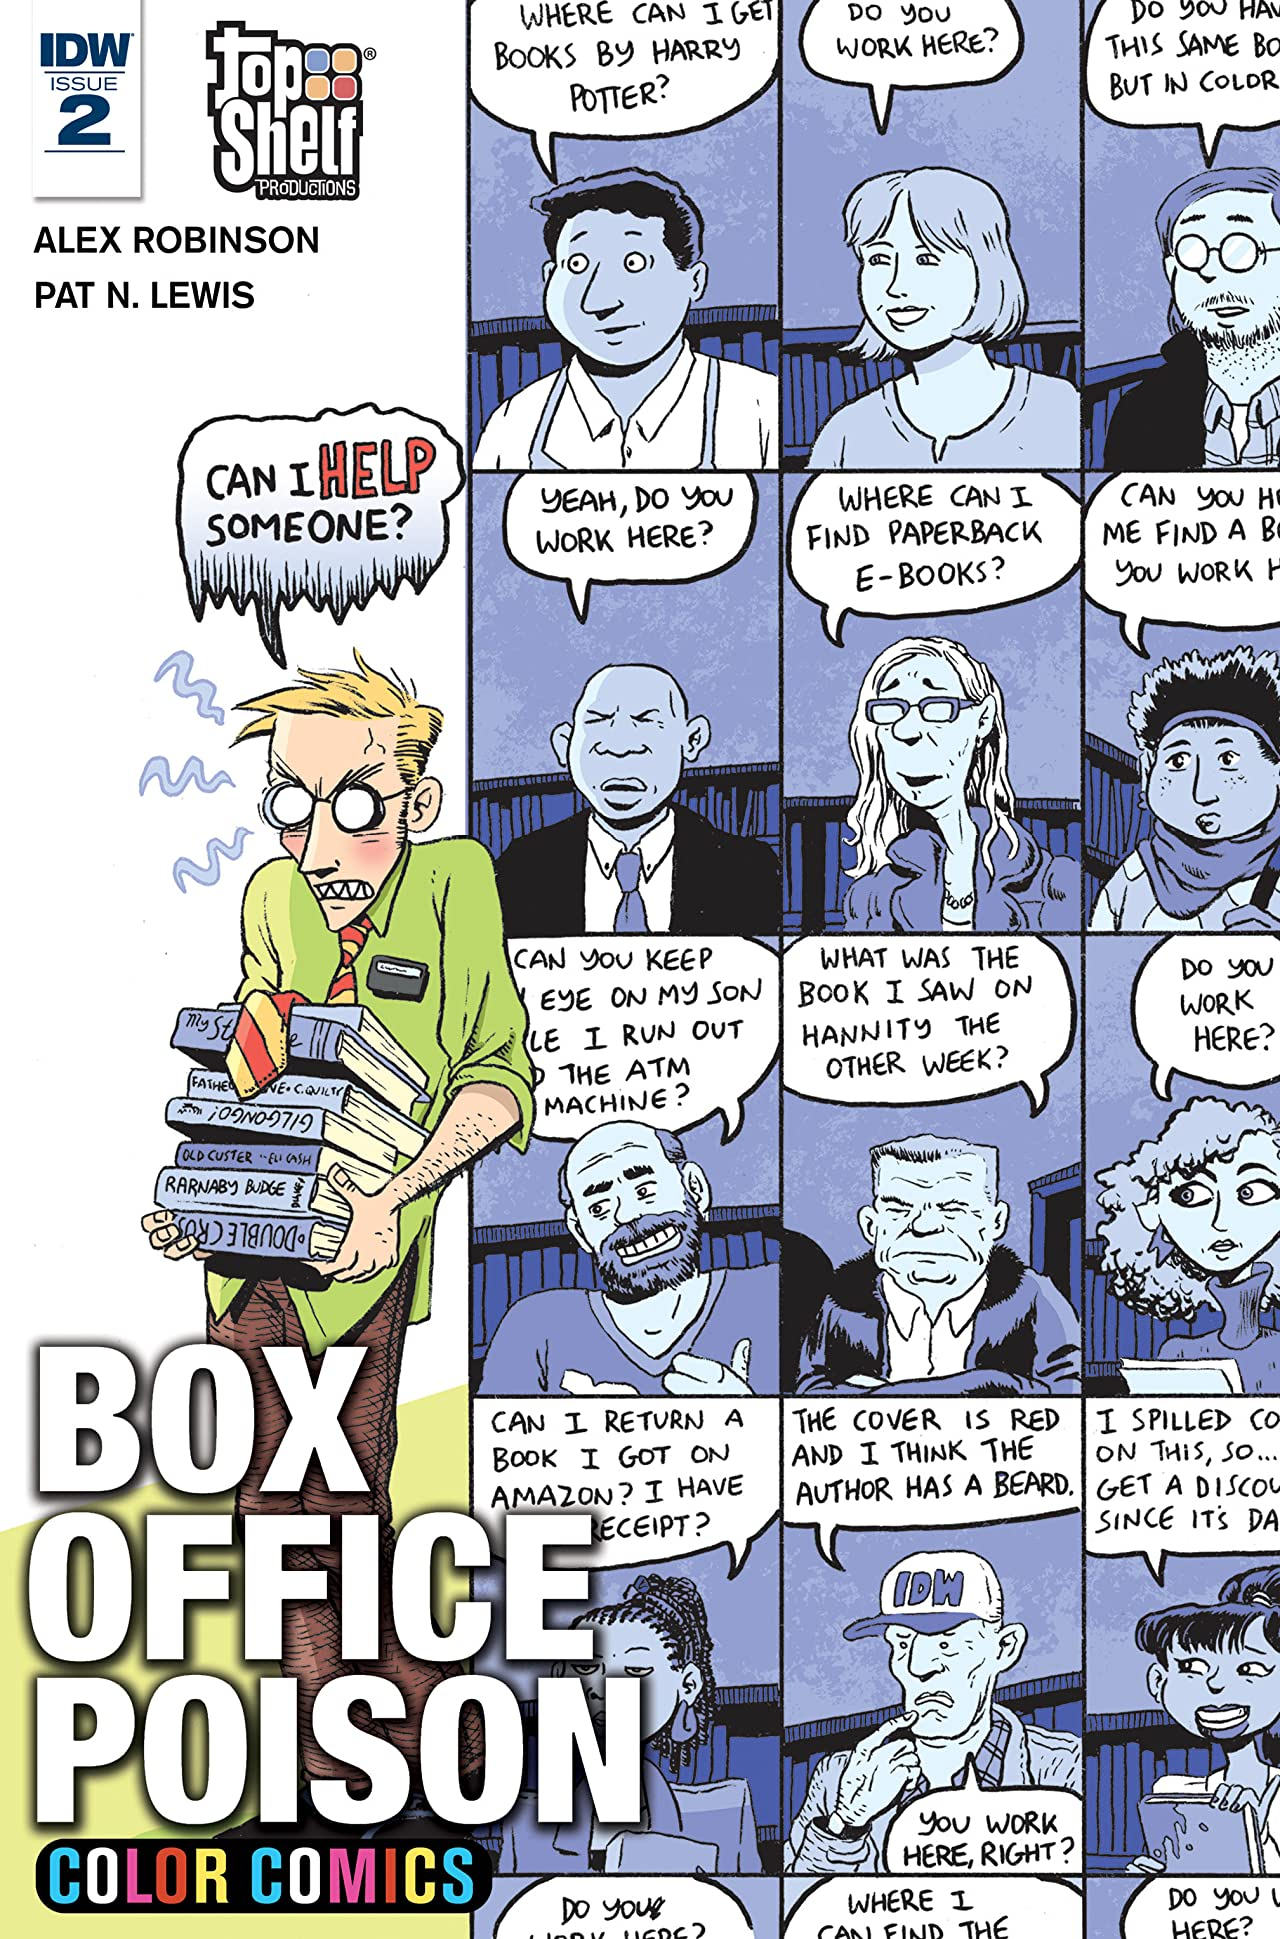 Box Office Poison Color Comics #2